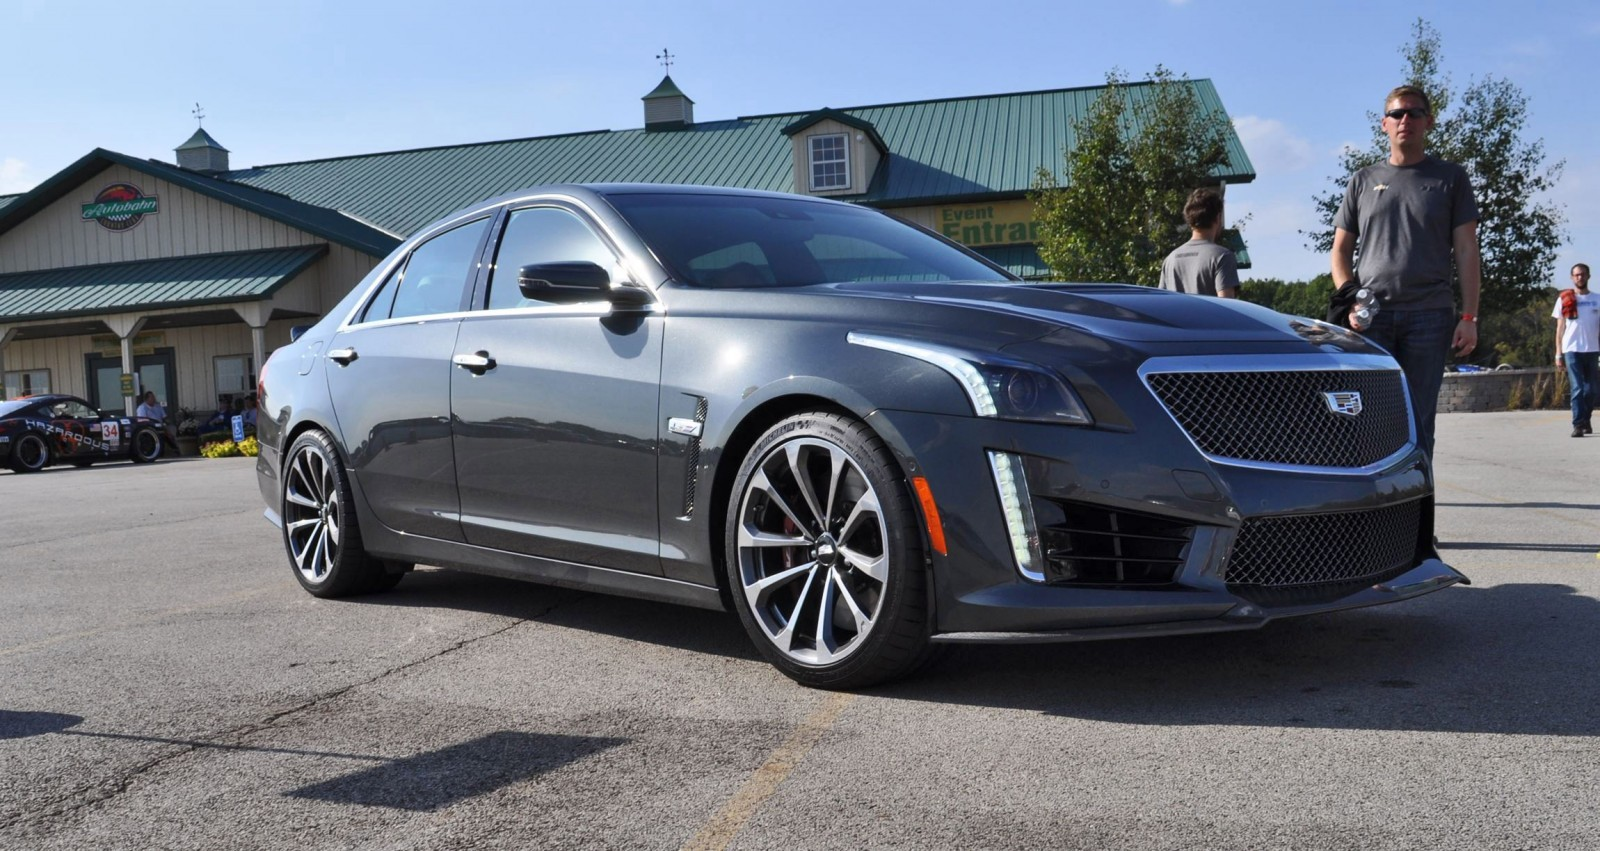 2016 cadillac cts v phantom grey and carbon package 30. Black Bedroom Furniture Sets. Home Design Ideas